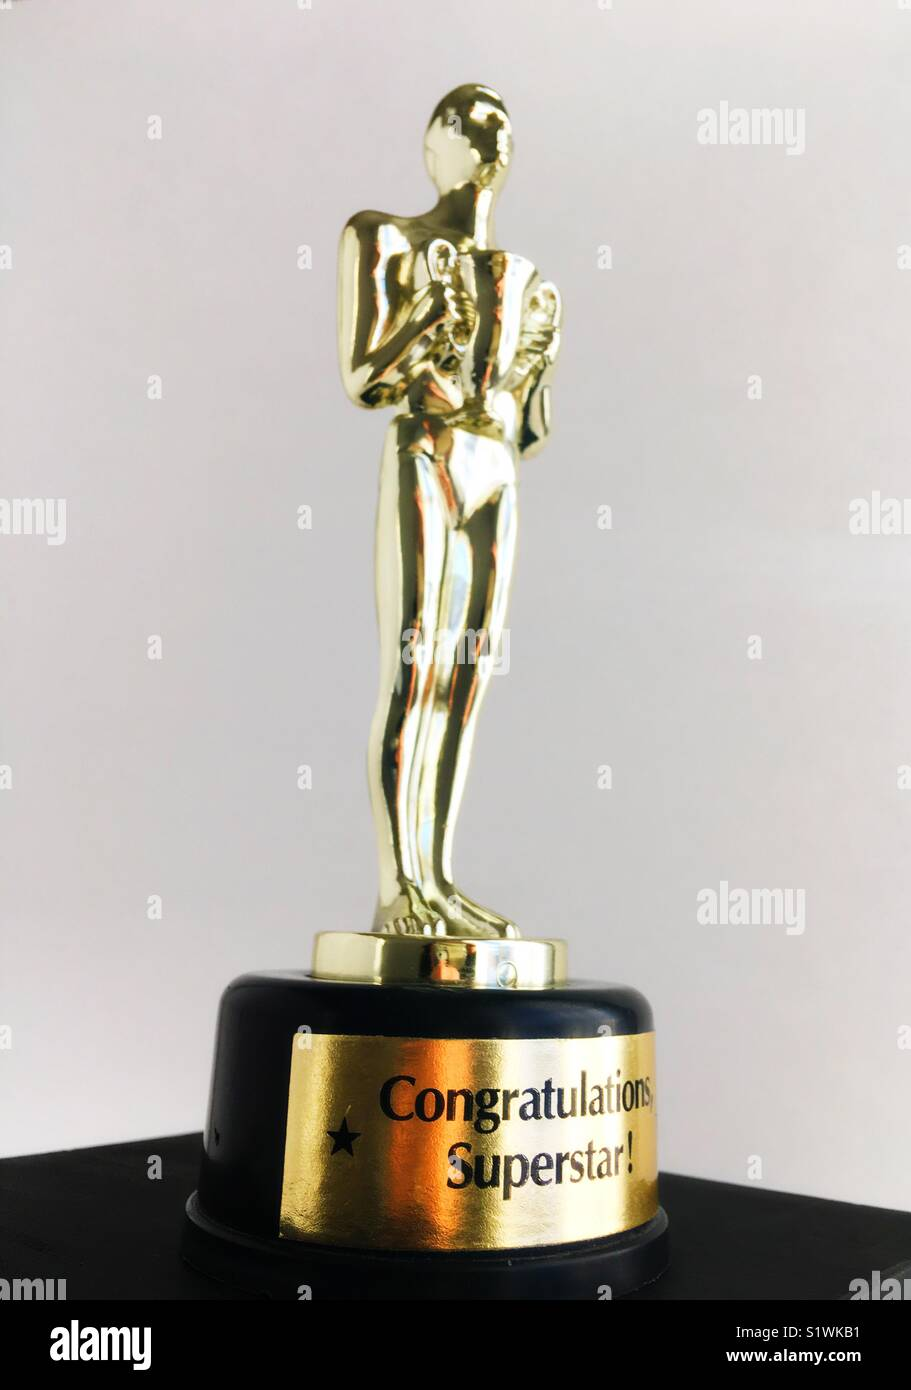 """A trophy that reads """"congratulations superstar"""". - Stock Image"""